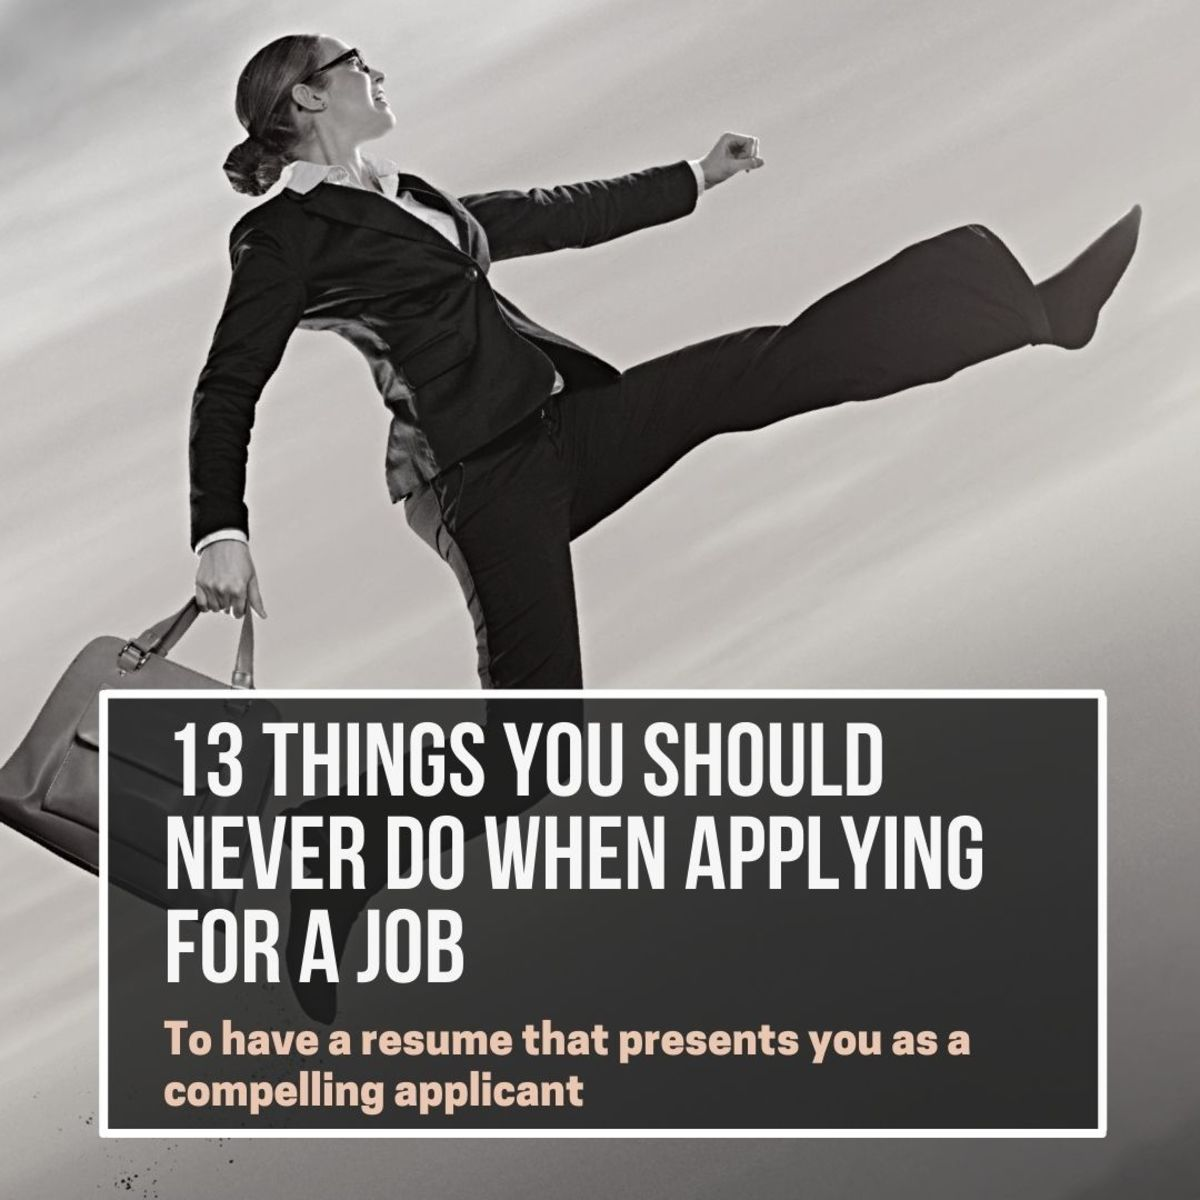 13 Things You Should Never Do When Applying for a Job